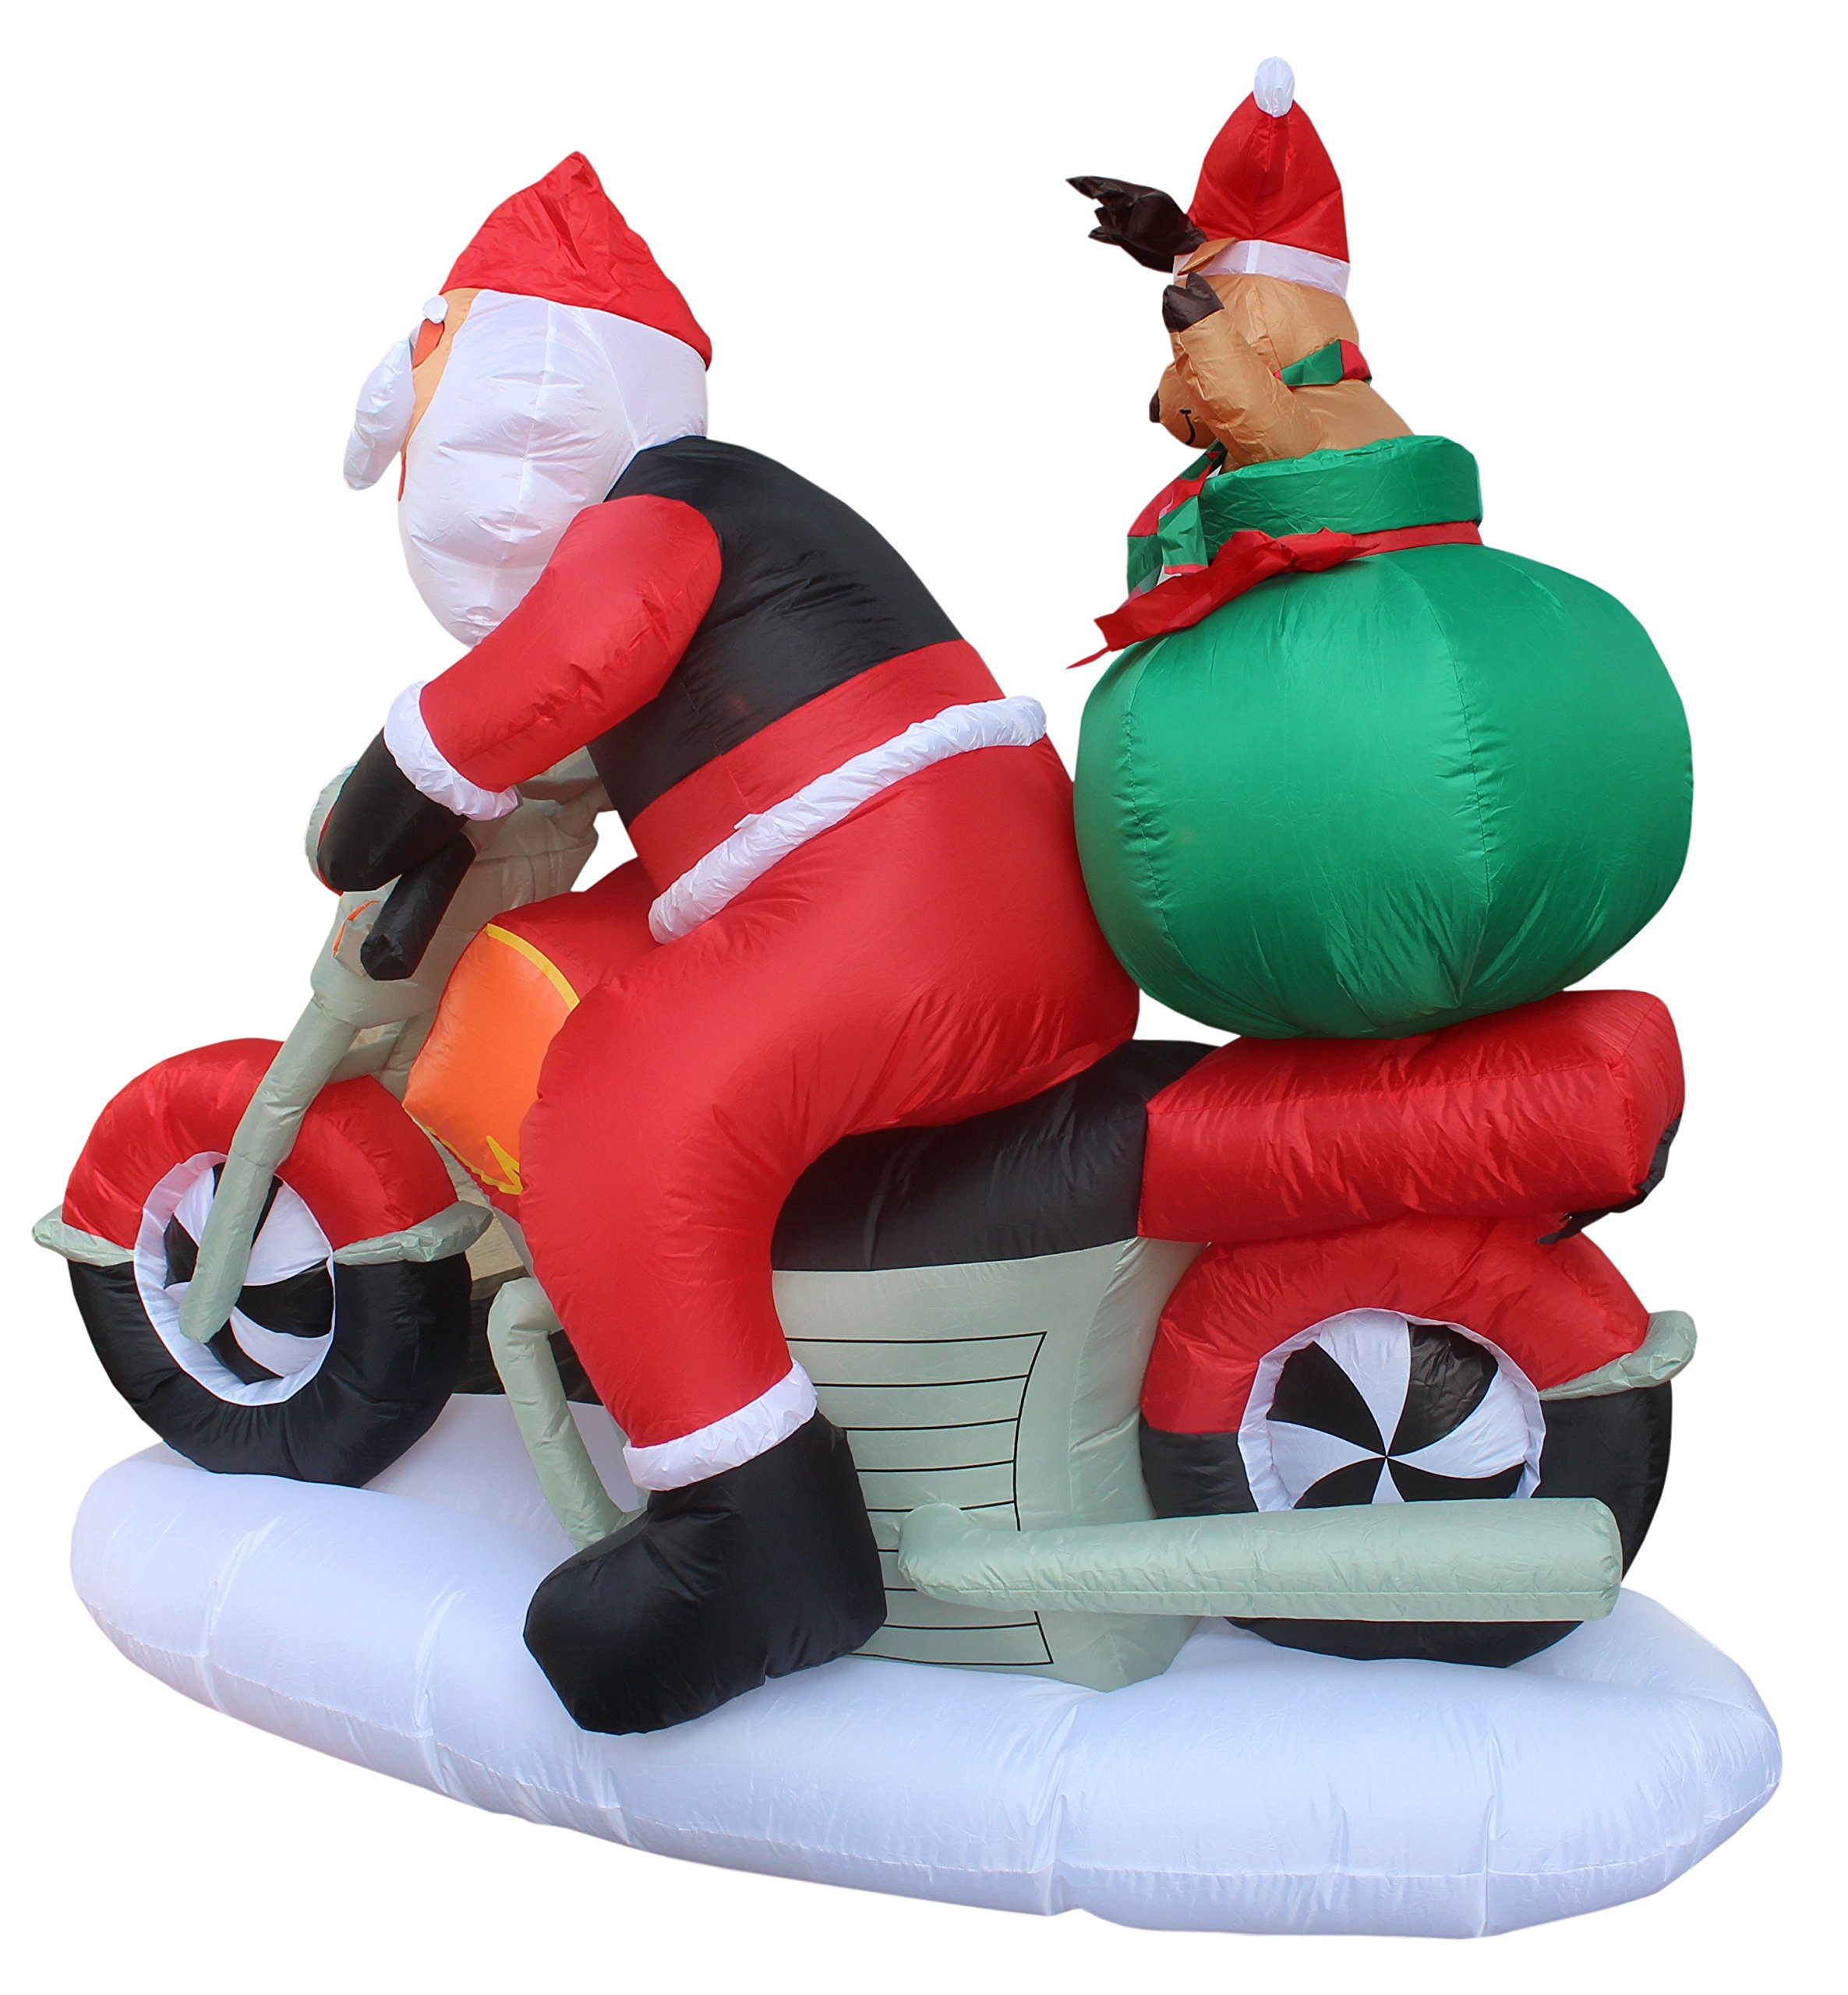 6 Foot Long Inflatable Santa Claus & Reindeer Riding Motorcycle